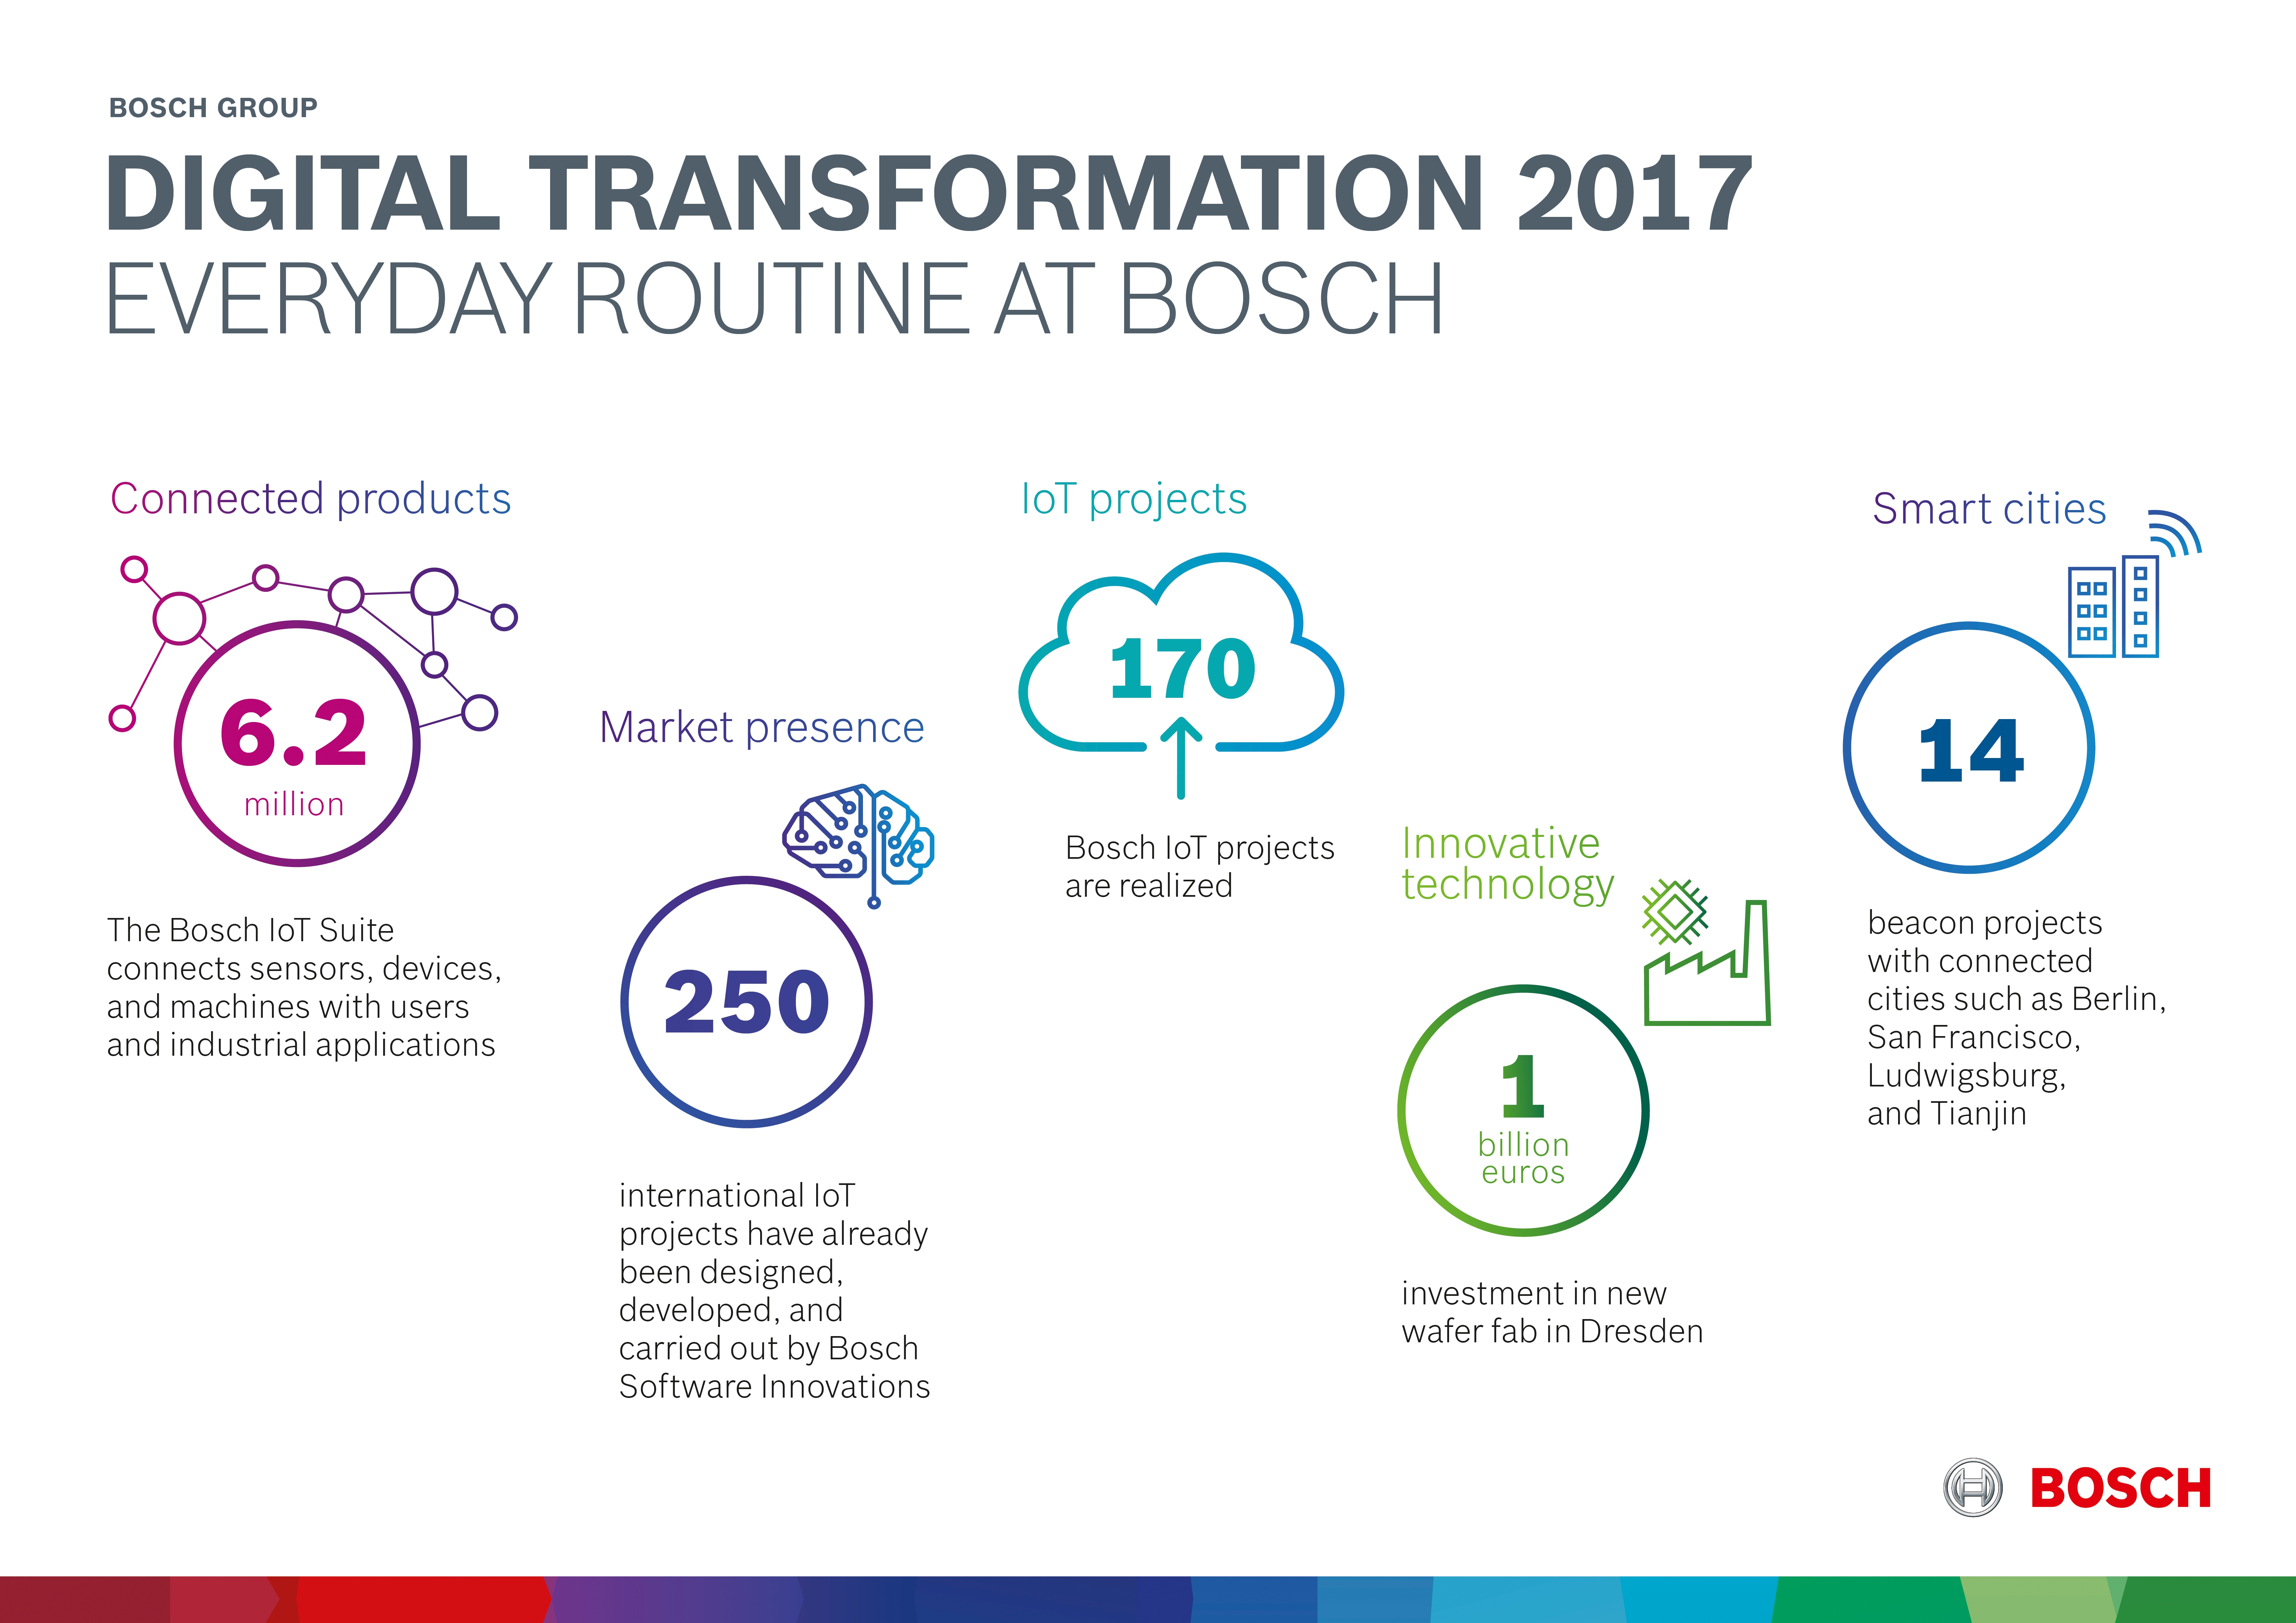 Digital transformation 2017: day-to-day business at Bosch